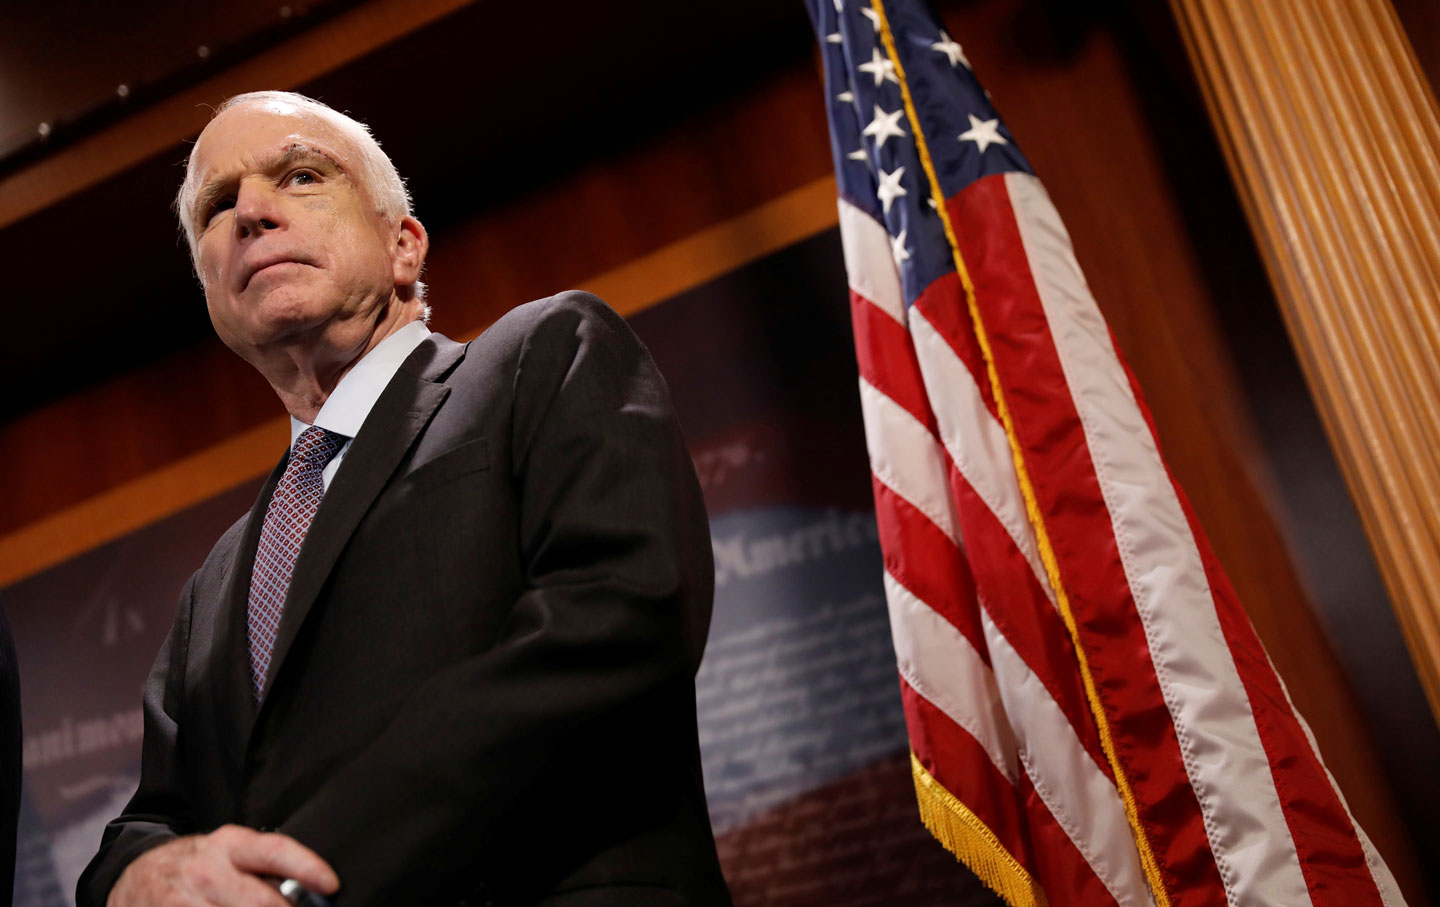 Senator John McCain looks on during a press conference